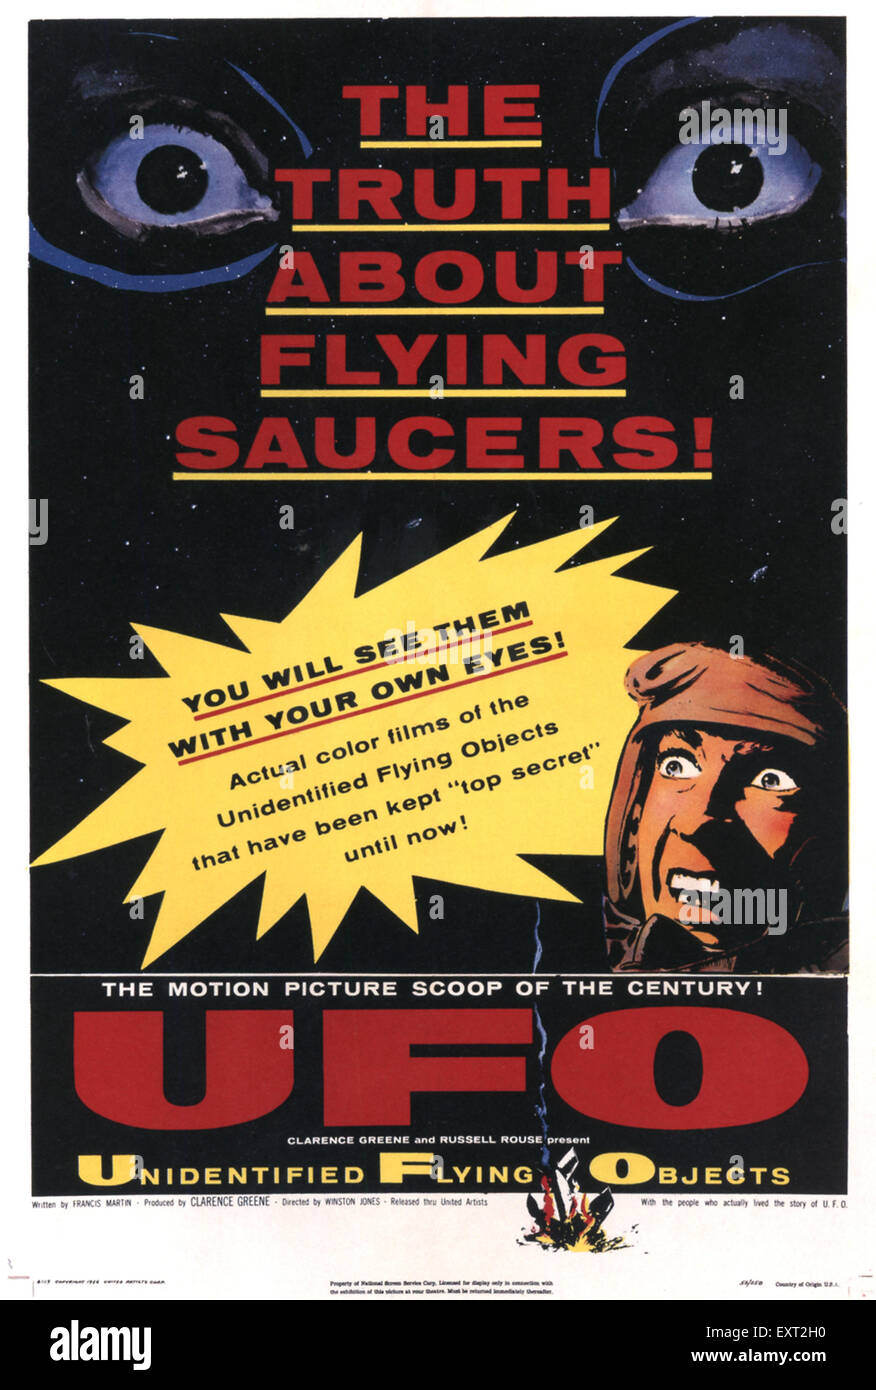 1940s USA Unidentified Flying Objects: The True Story Of Flying Saucers / UFO Film Poster - Stock Image